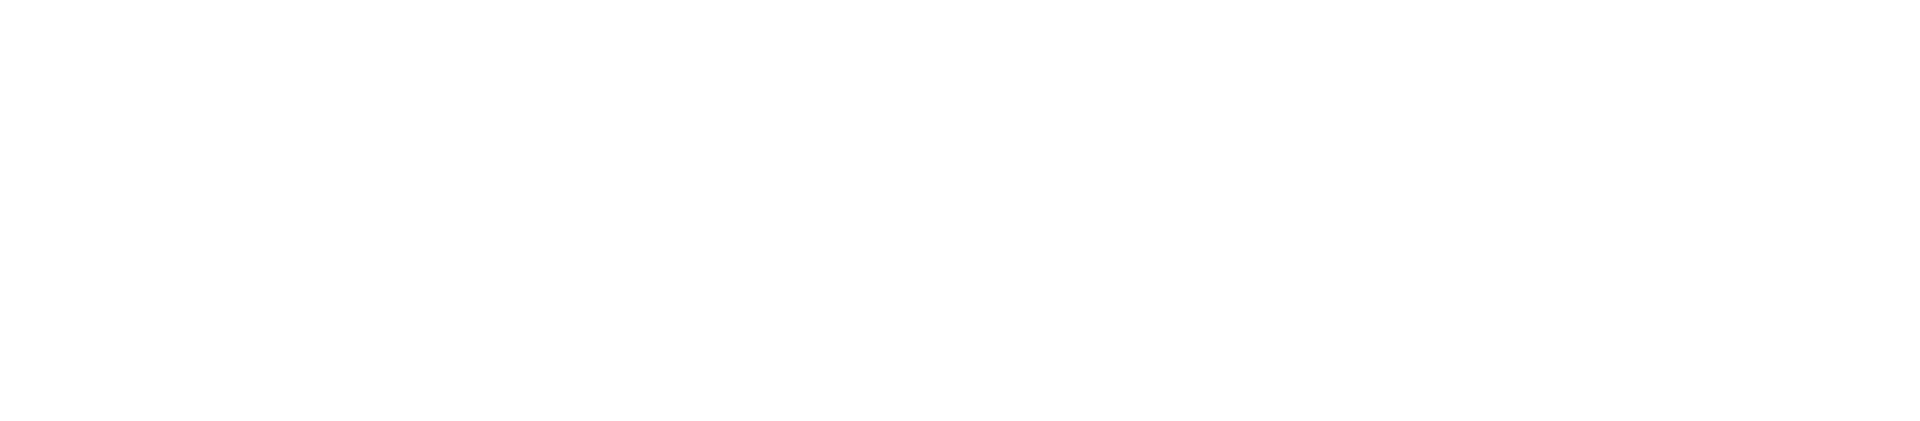 Webhound Media - Digital Marketing Agency